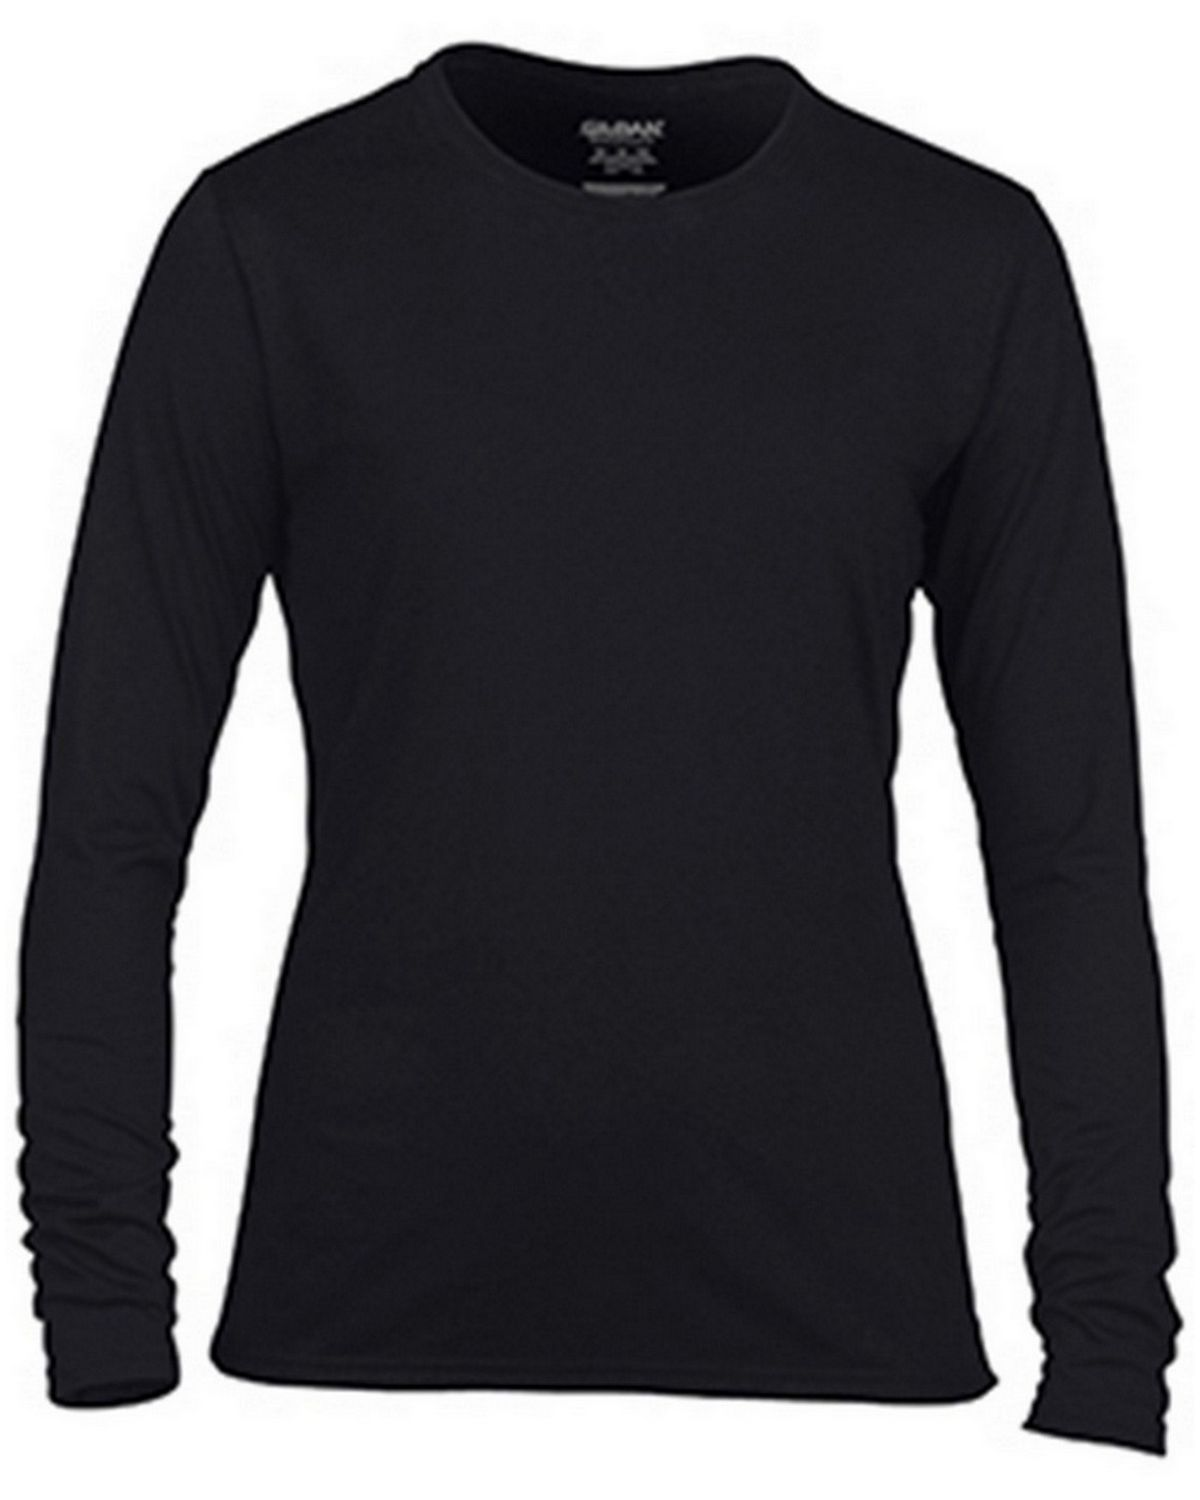 Gildan G42400L Ladies Long Sleeve Tee - Black - 2X G42400L